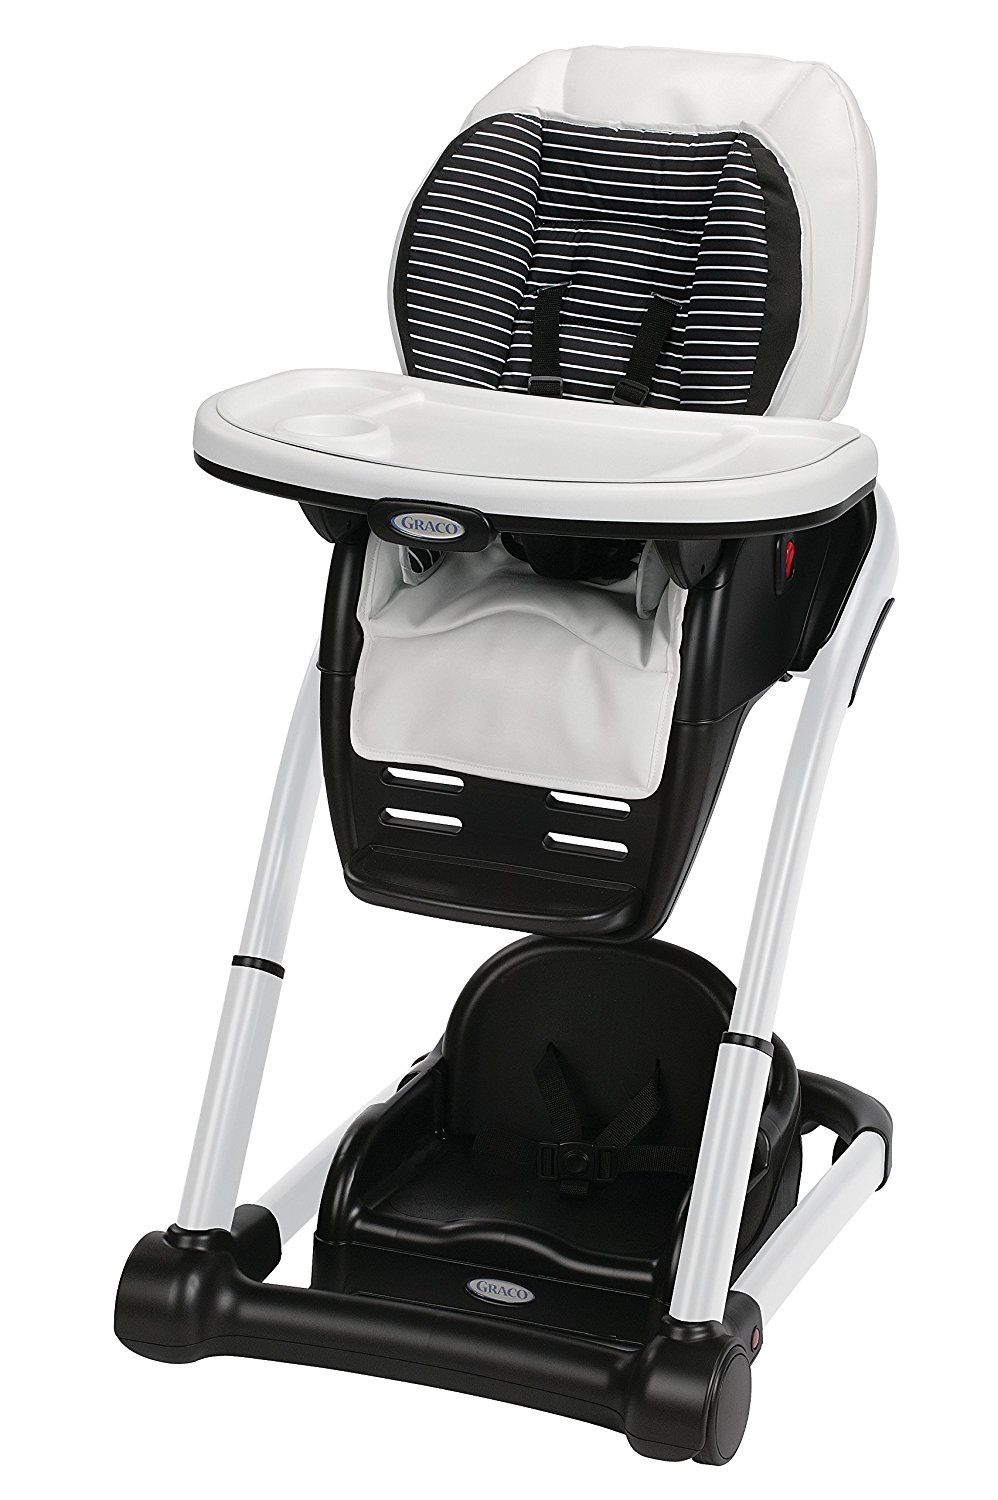 Free 2 Day Shipping Buy Graco Blossom 6 In 1 Convertible High Chair Studio At Walmart Com In 2020 Graco High Chair Baby High Chair Best High Chairs